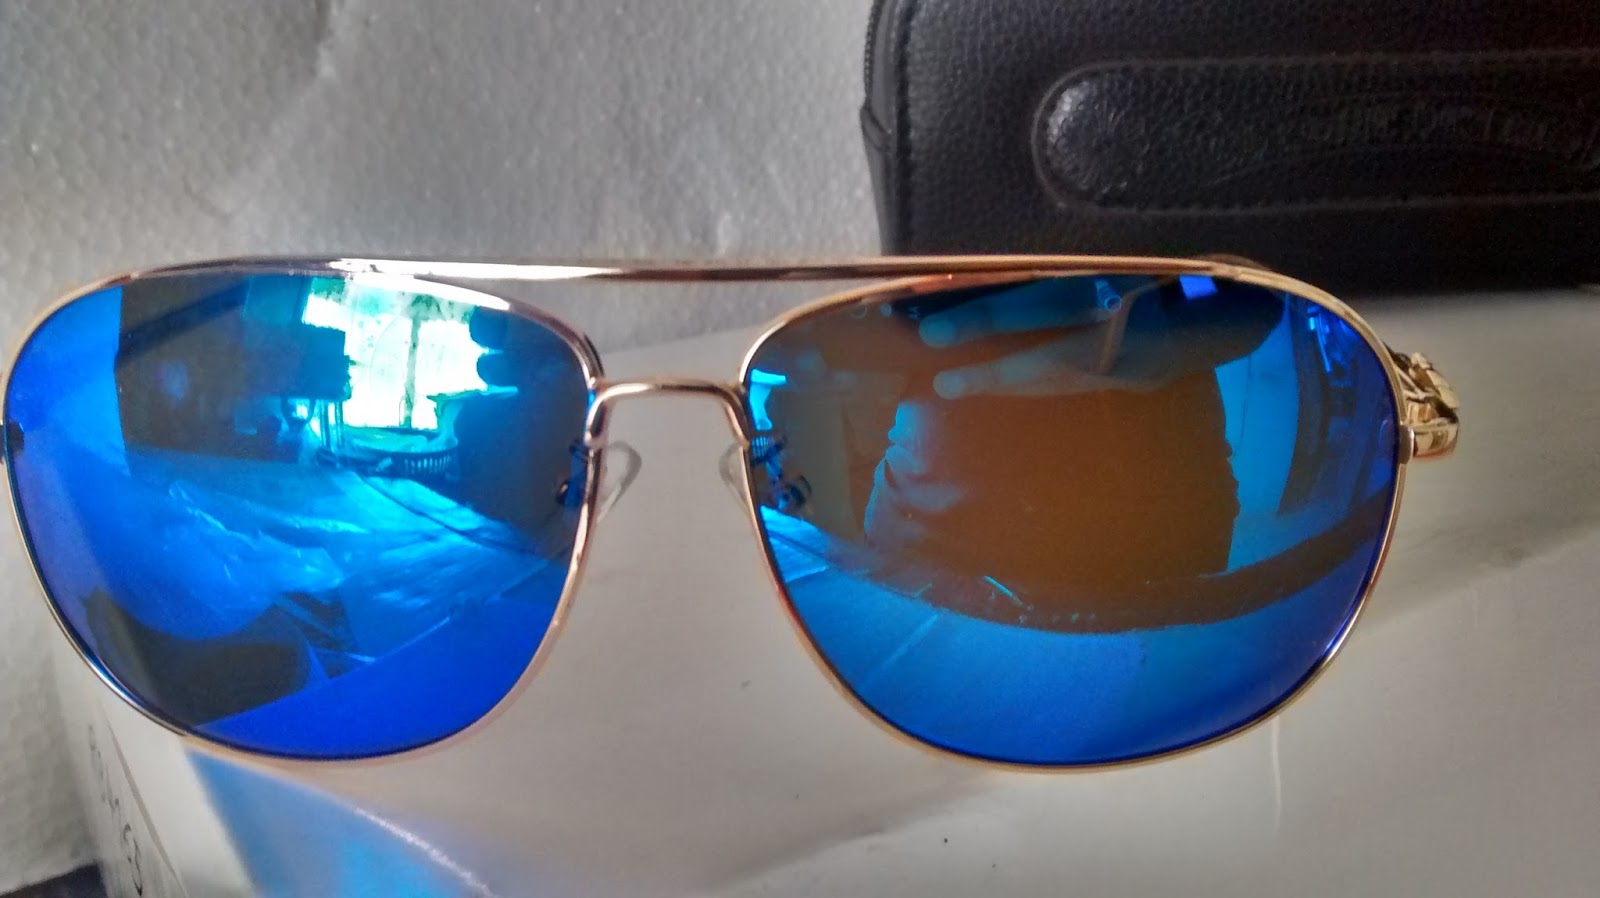 f21d069dd16 Rs1999 Chrome Hearts Sunglasses Mirror Blue Gold Frame Size 62